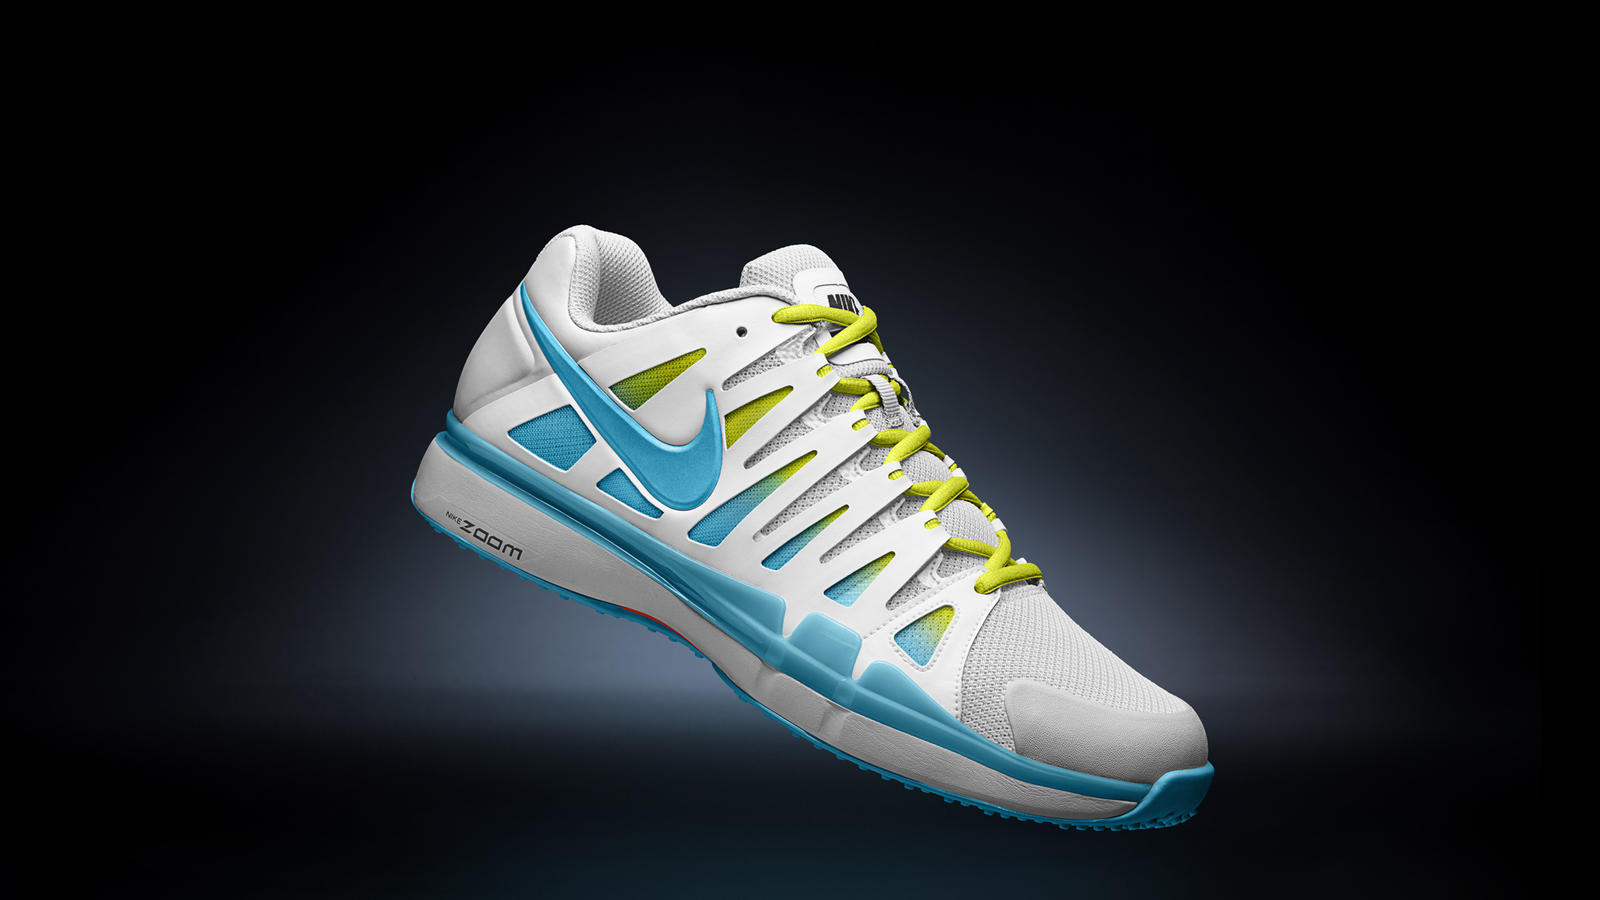 83589d09a184 Sp13 TN NIKEiD Vapor9 Aqua. Sp13 TN NIKEiD Vapor9 Black.  Sp13 TN NIKEiD Vapor9 Detail 1. Sp13 TN NIKEiD Vapor9 Detail 2.  Sp13 TN NIKEiD Vapor9 Detail 3